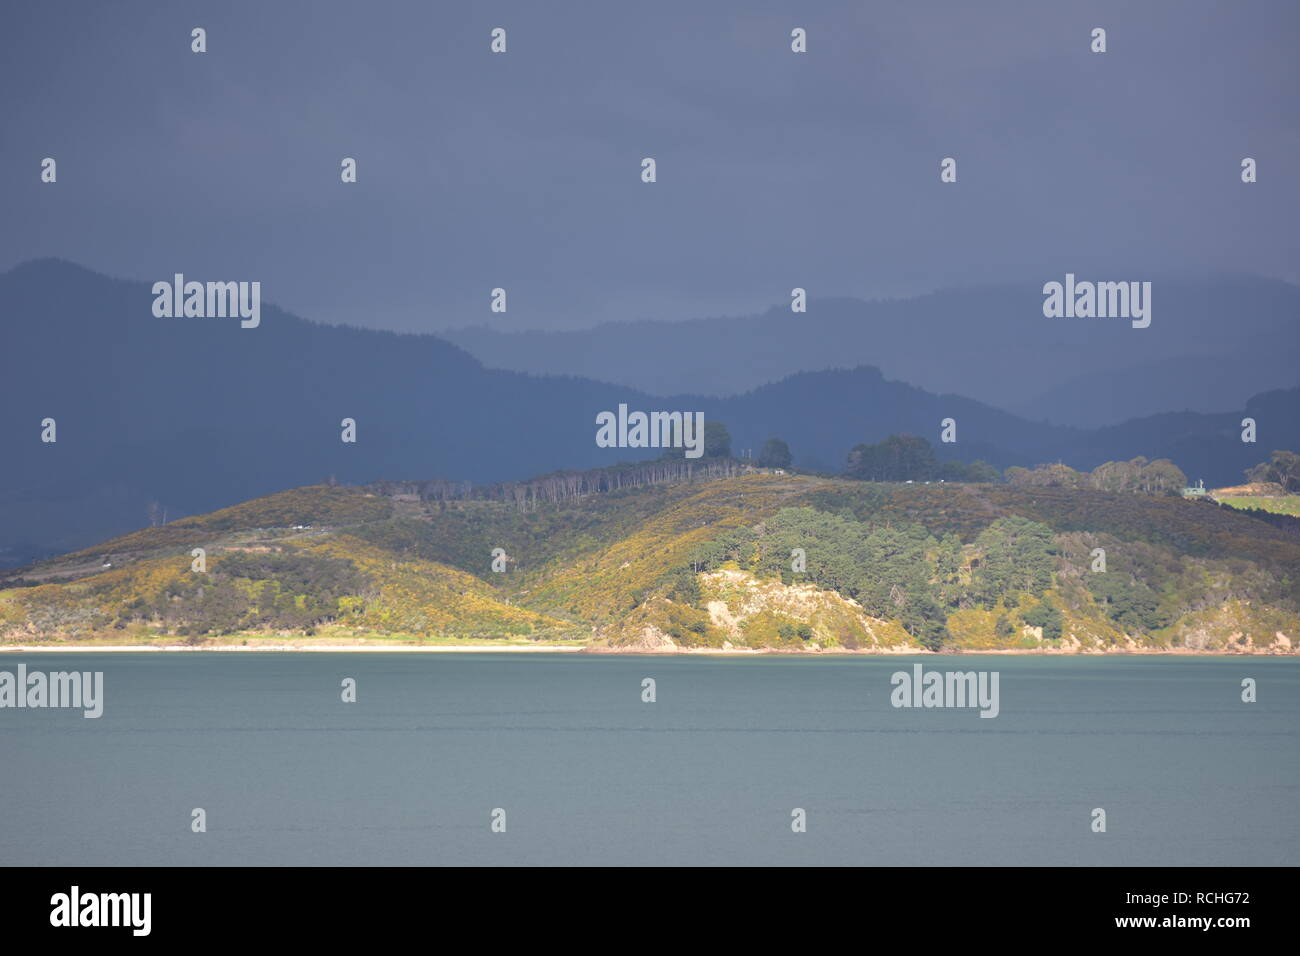 Storm coming over islands in inner Hauraki Gulf in New Zealand. - Stock Image